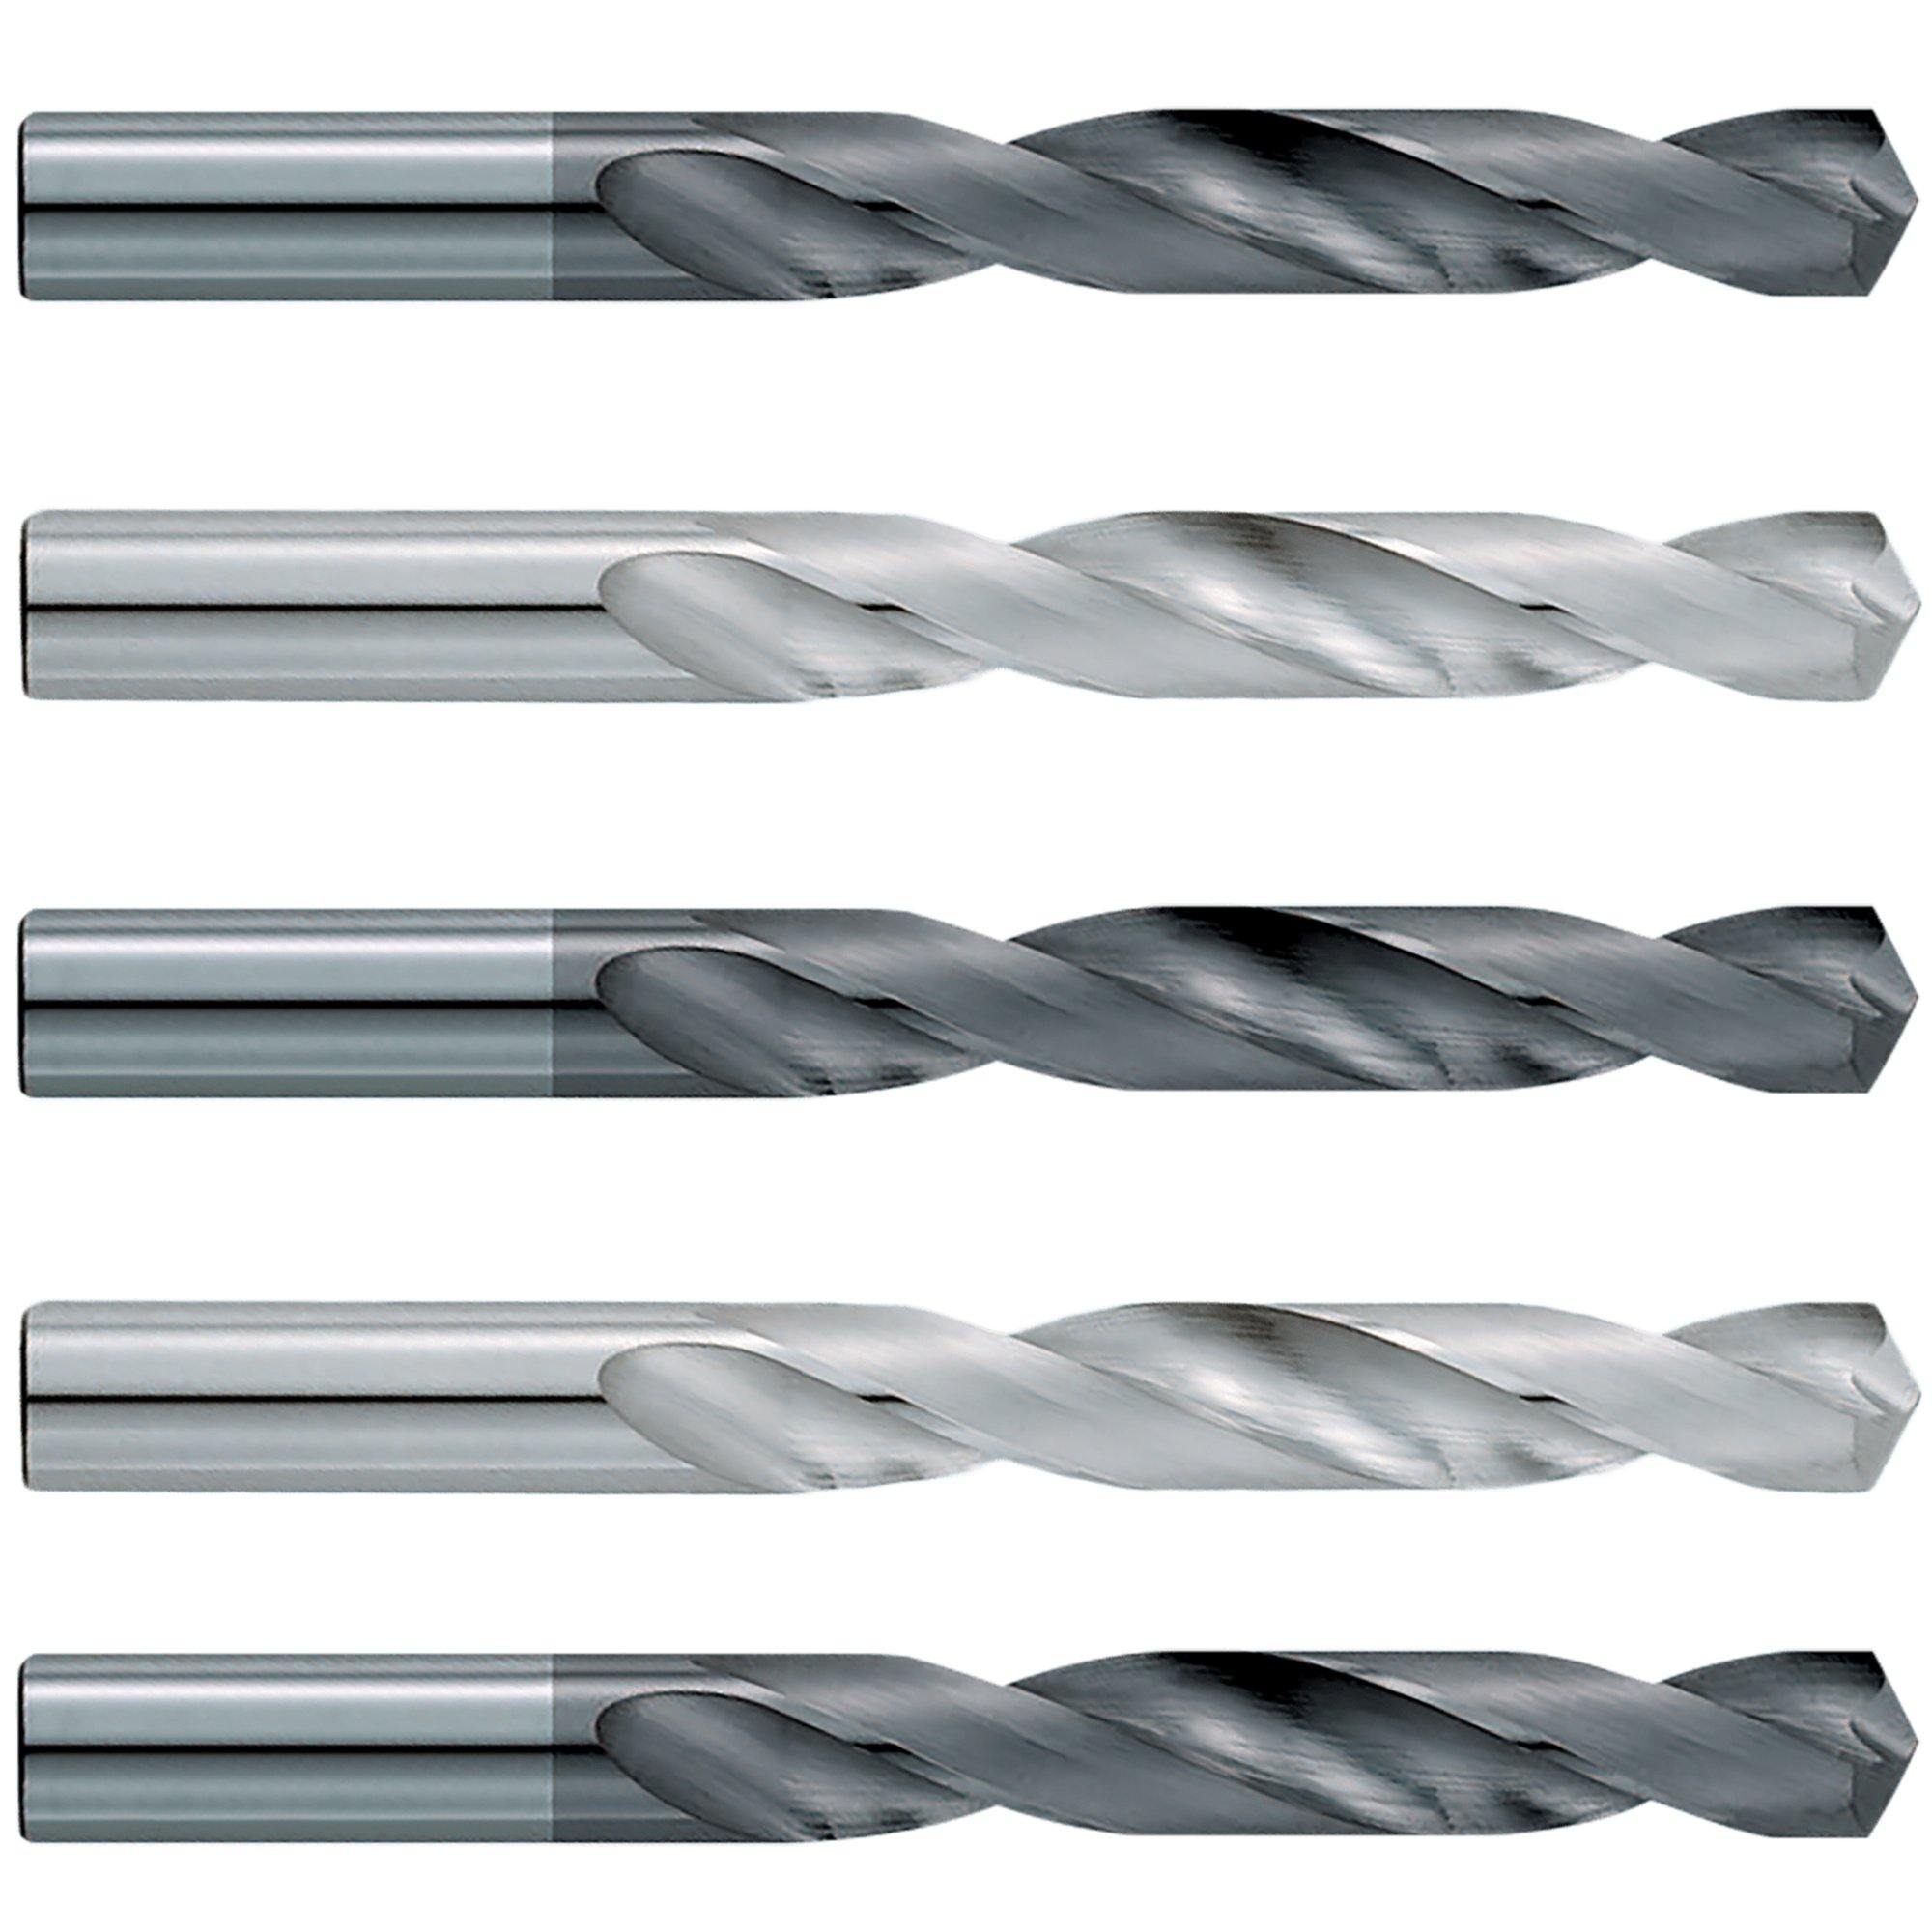 "(5 Pack)  Size (V)  .377 x 2-3/4"" LOF x  4-1/4"" OAL Carbide Drill Bits - End Mill Store"